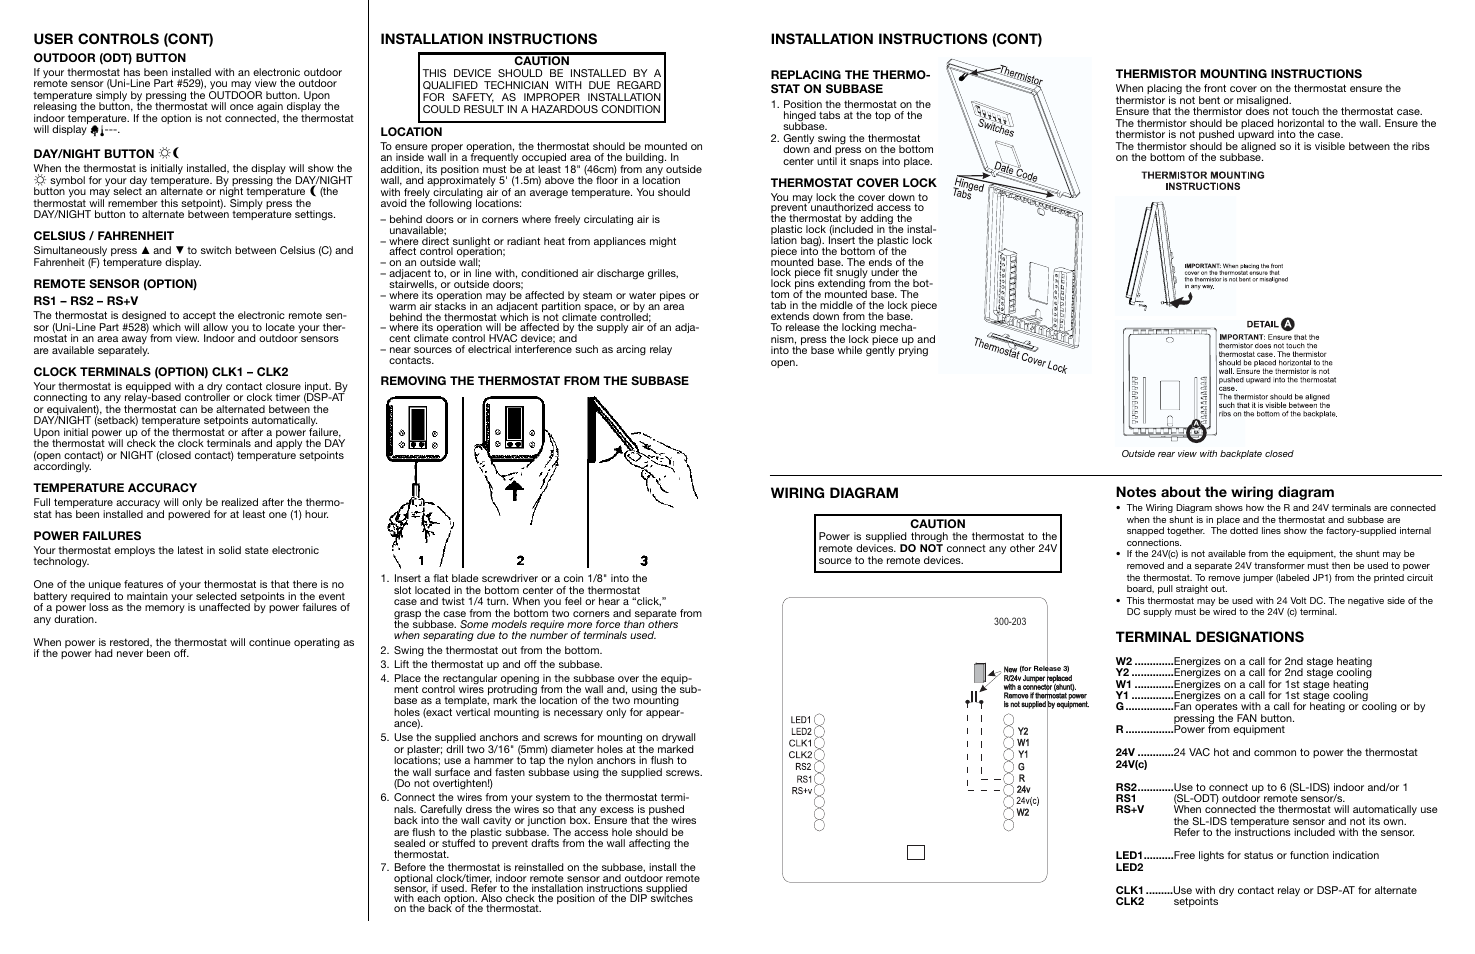 robertshaw 9500 thermostat wiring diagram attwood sahara s500 ignition control